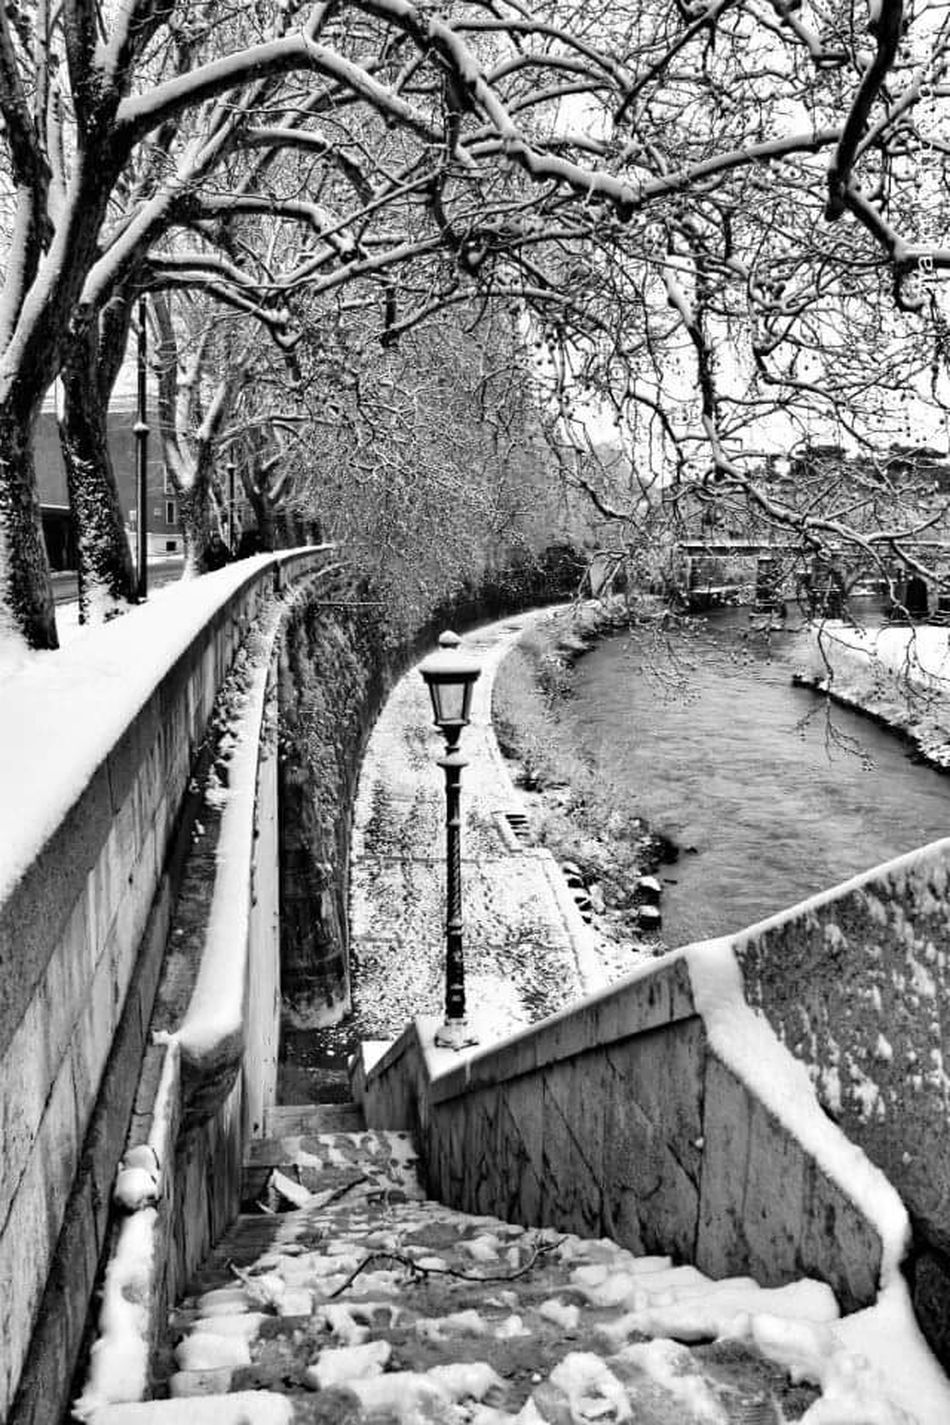 Roma Rome Rome Italy Italia Italy Italy🇮🇹 Italy❤️ Lungotevere Snow ❄ Snow Day Snow Street Streetphotography Street Photography Lampions Lampione Black & White Black And White Photography Black And White Collection  Blackwhite Bianco&nero Biancoenero Biancoeneroitalia Bianco E Nero Italia River View